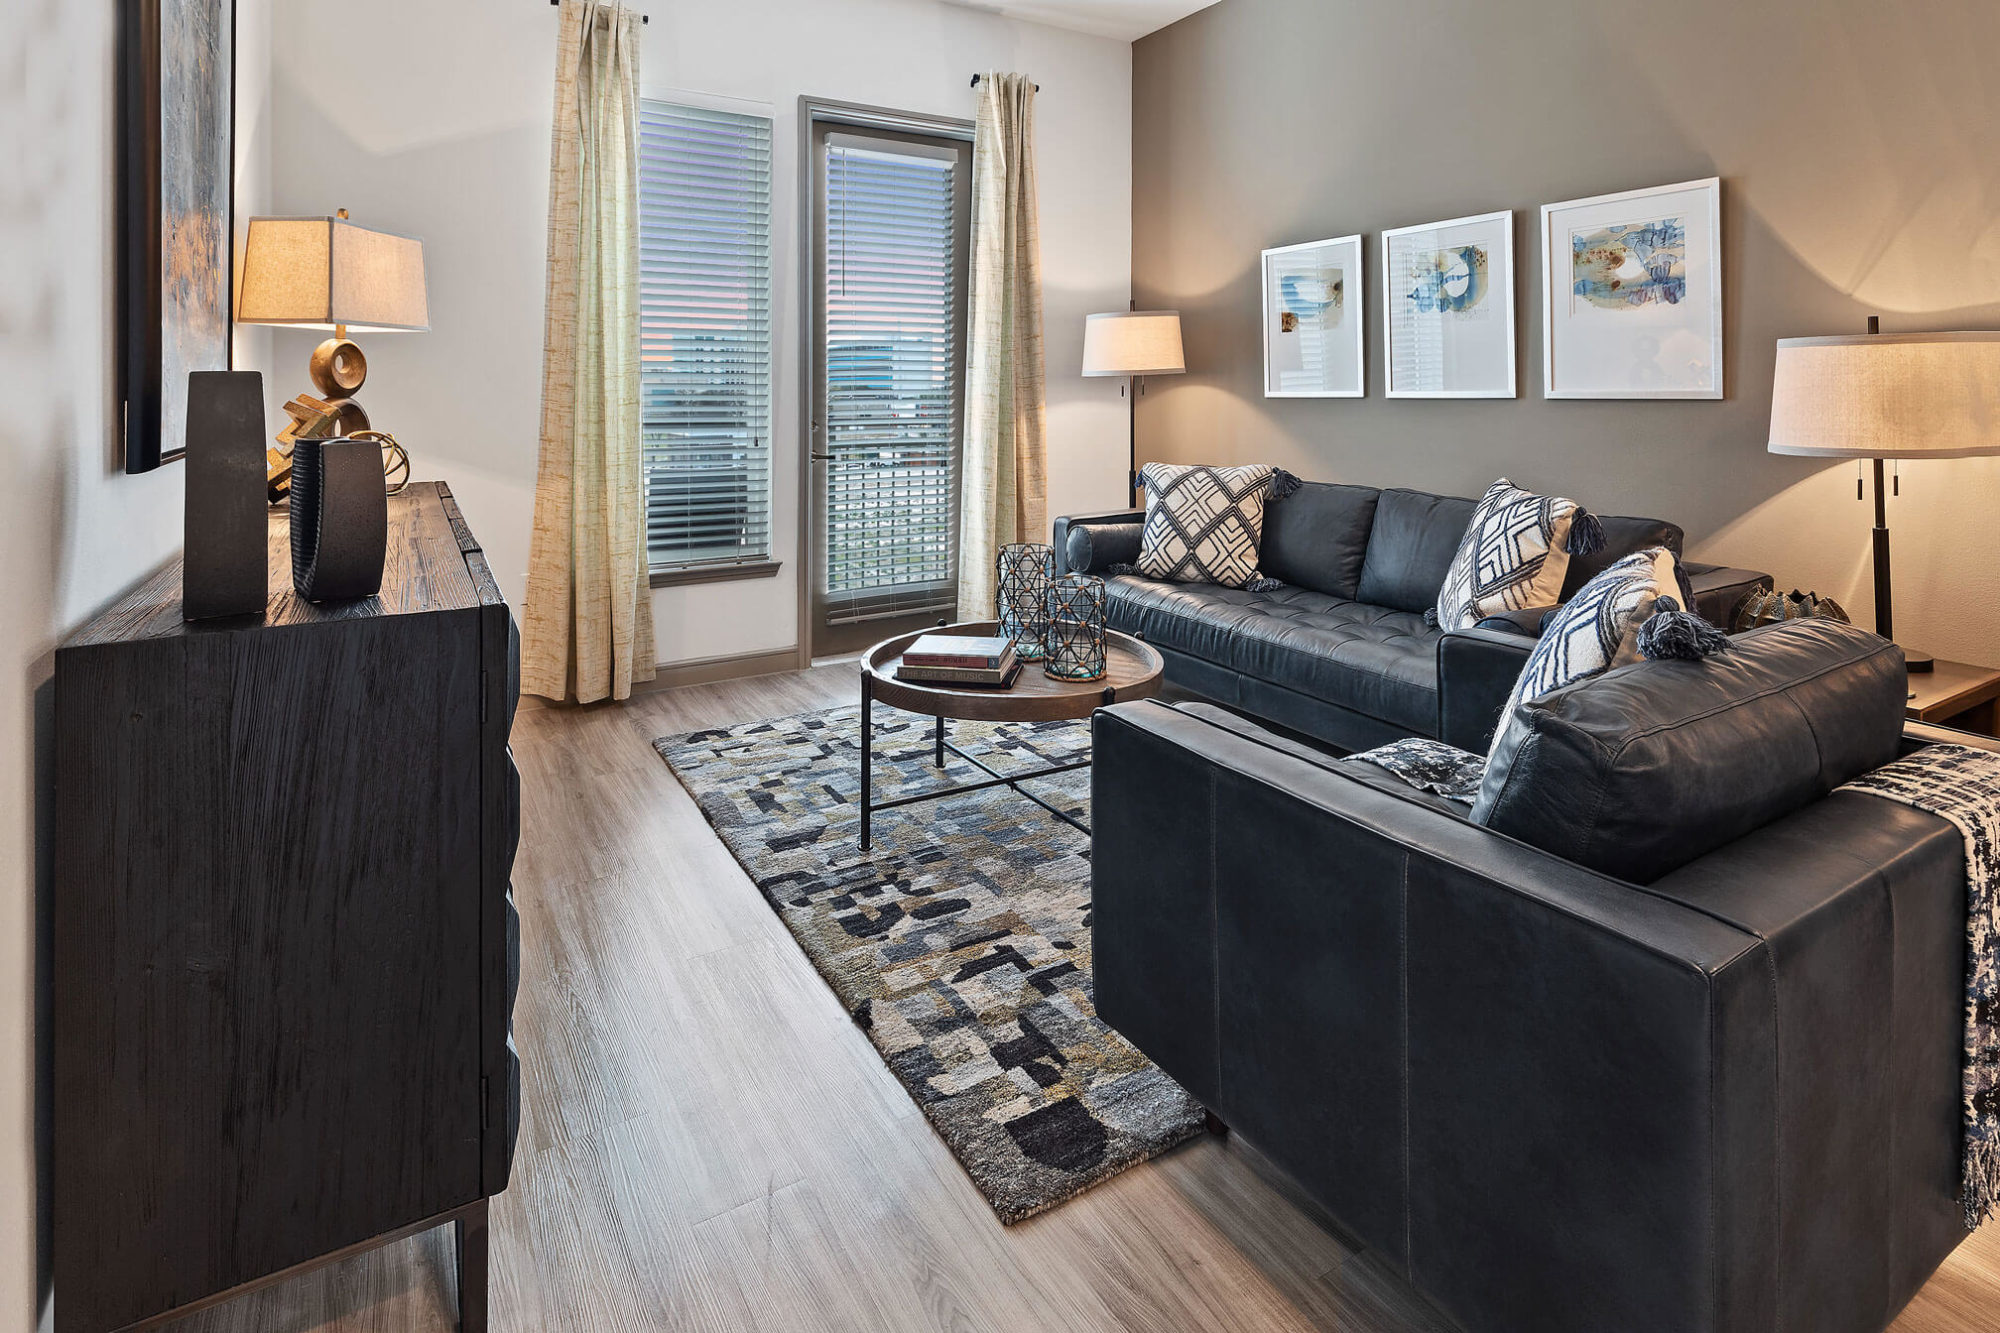 Living room with door to patio/balcony, modern furniture, tan accent wall, and wood like flooring